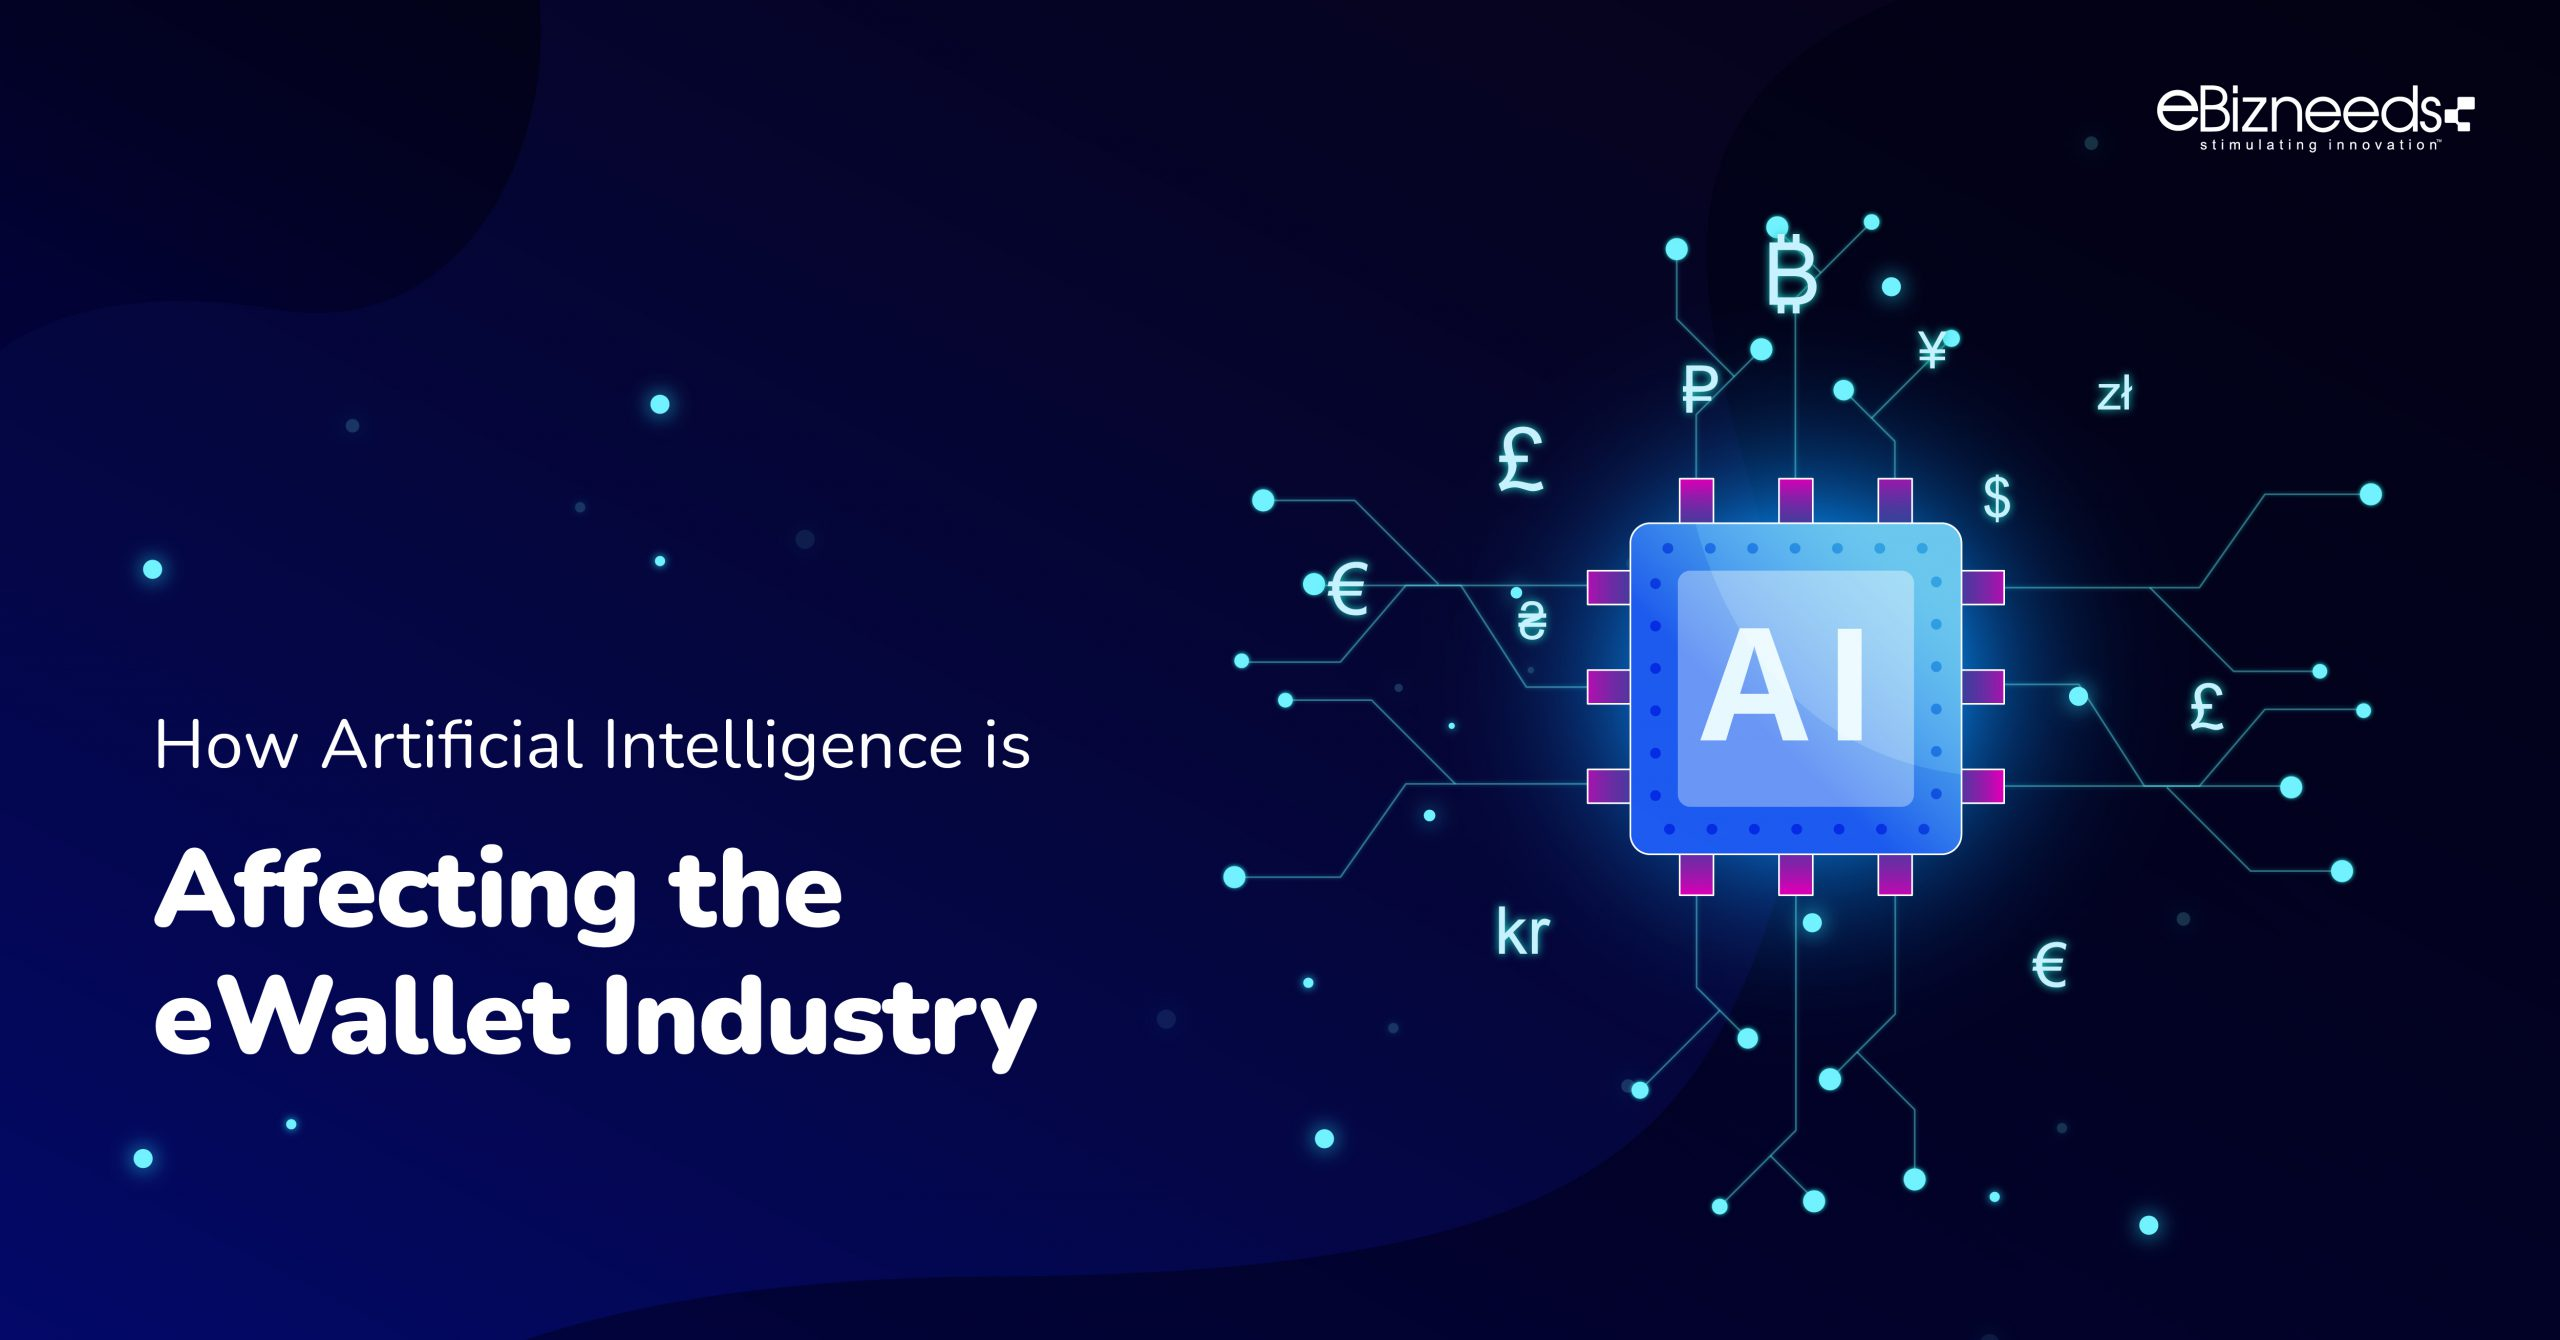 How Artificial Intelligence is Affecting the eWallet Industry